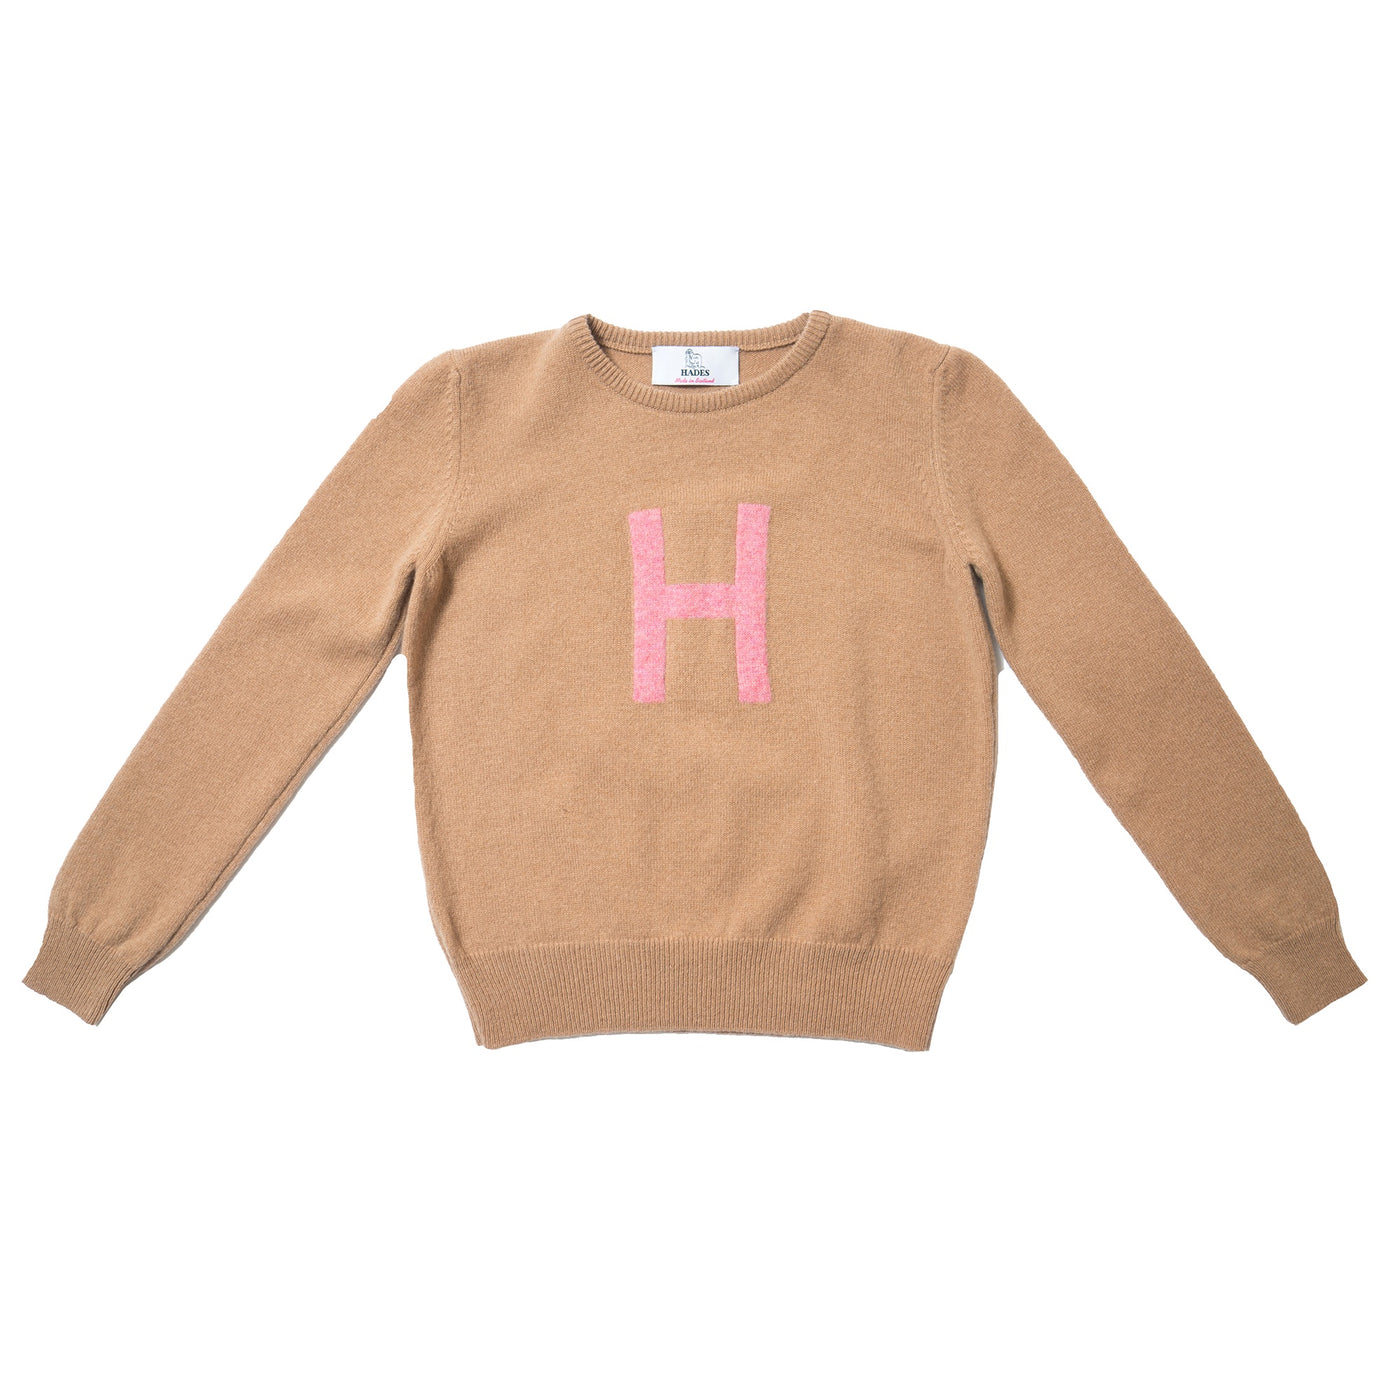 Hades - Alphabet knit Jumper H